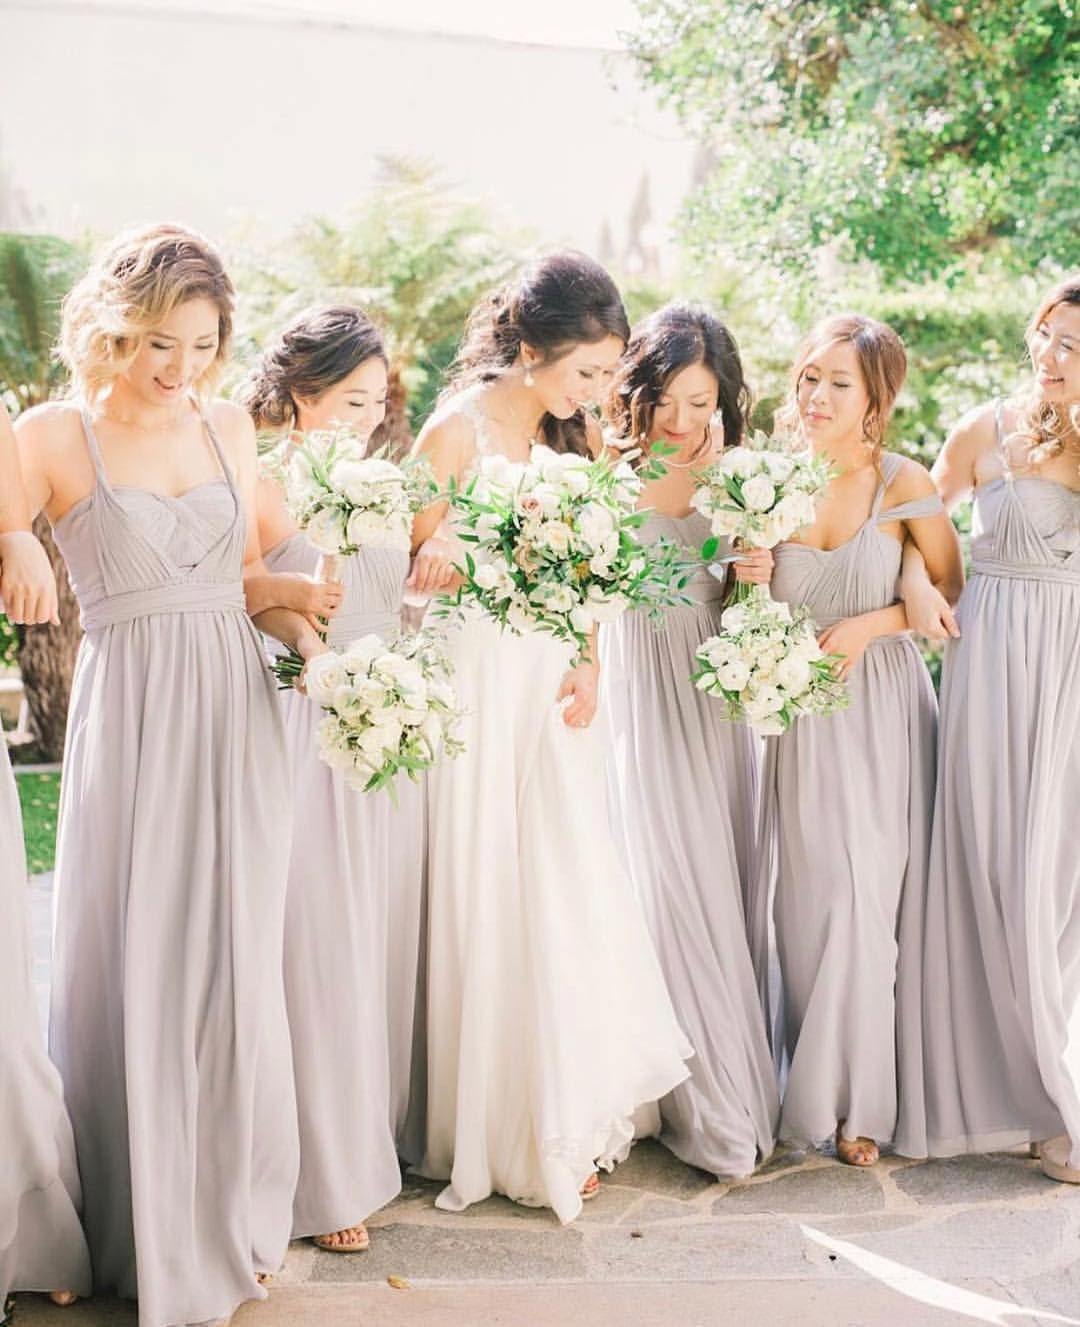 Convertible aidan bridesmaid dresses in mineral luxe chiffon by convertible aidan bridesmaid dresses in mineral luxe chiffon by jenny yoo ombrellifo Choice Image